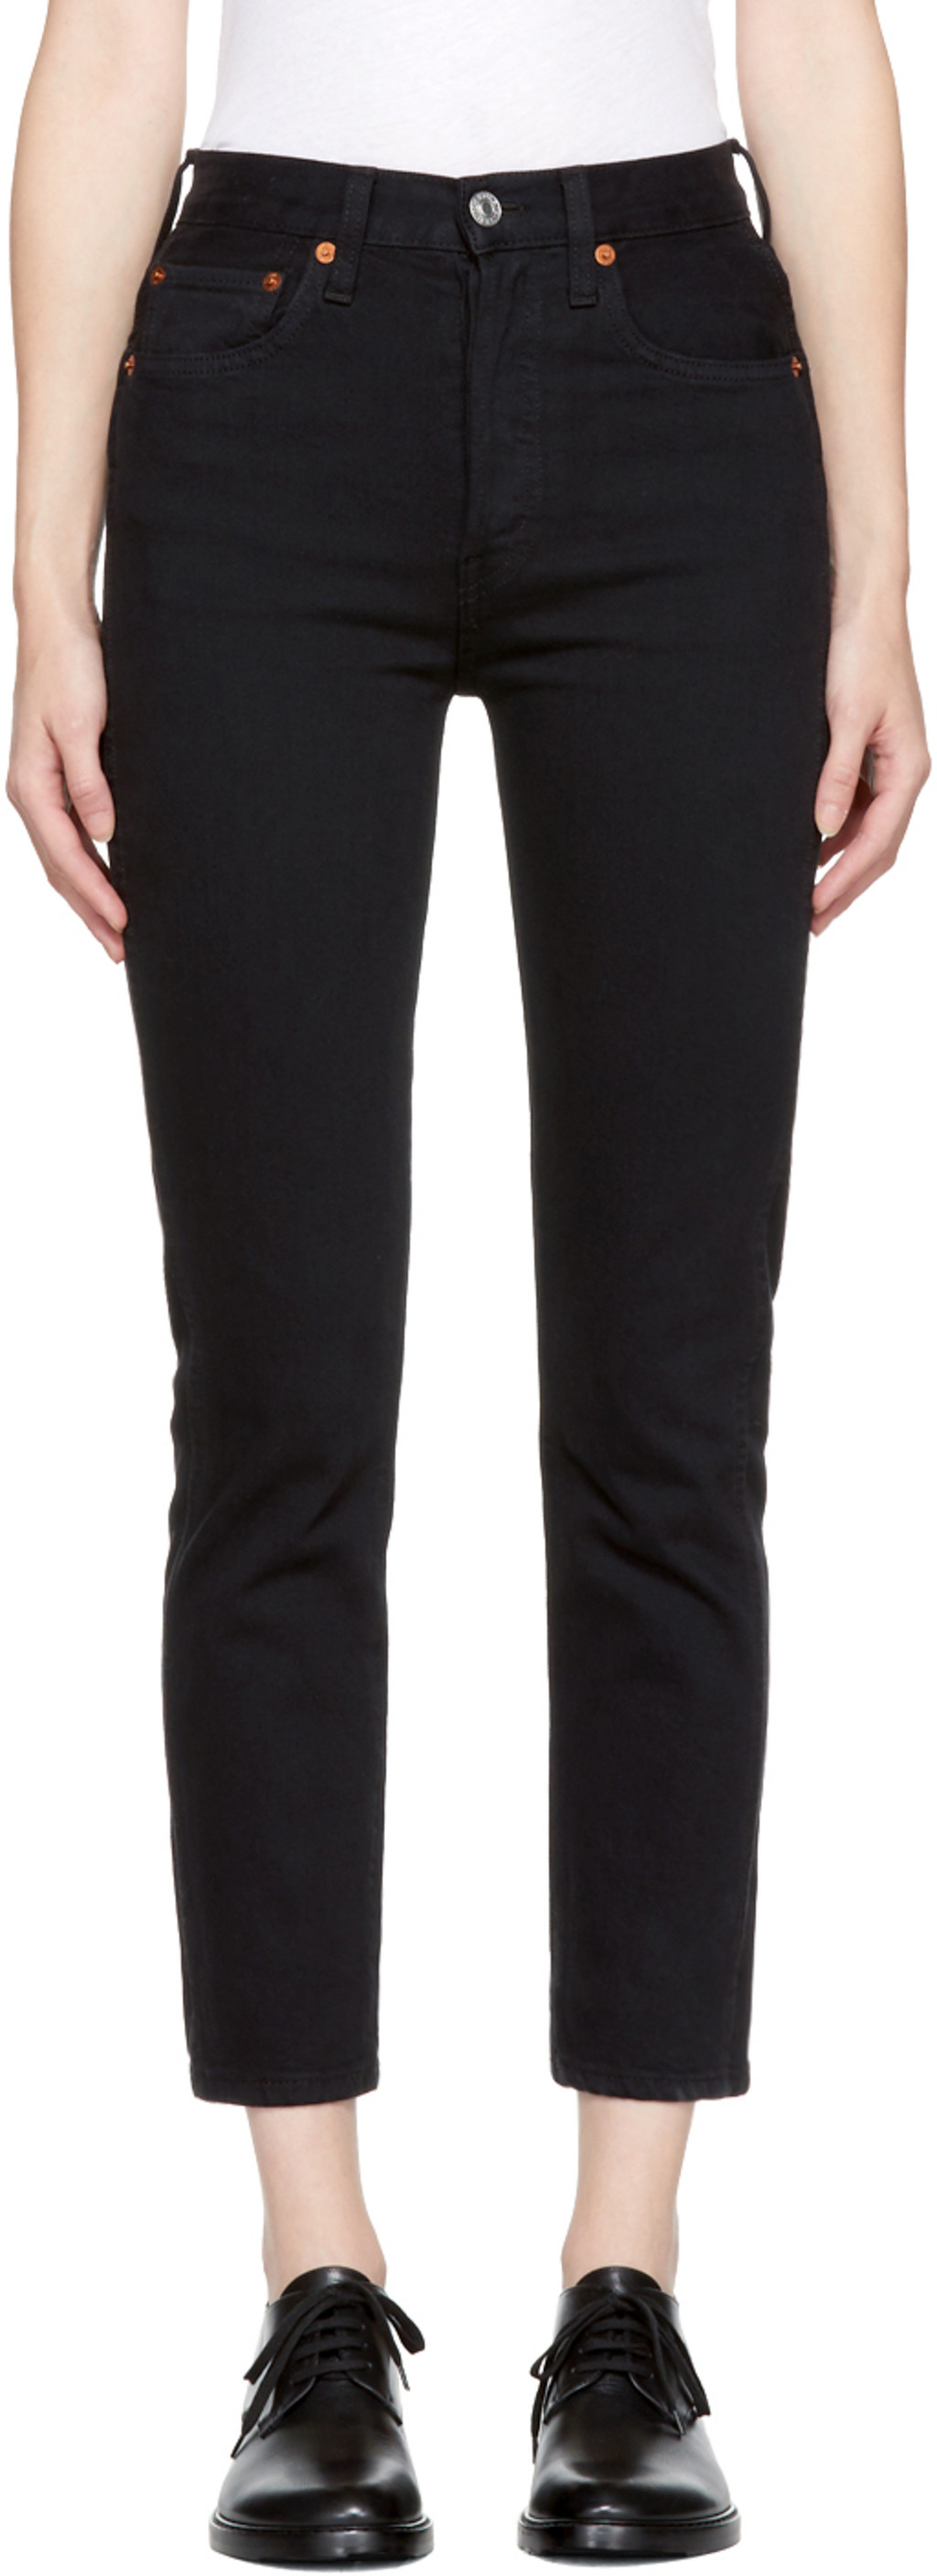 cropped jeans - Black Re/Done mTTOX8DShF